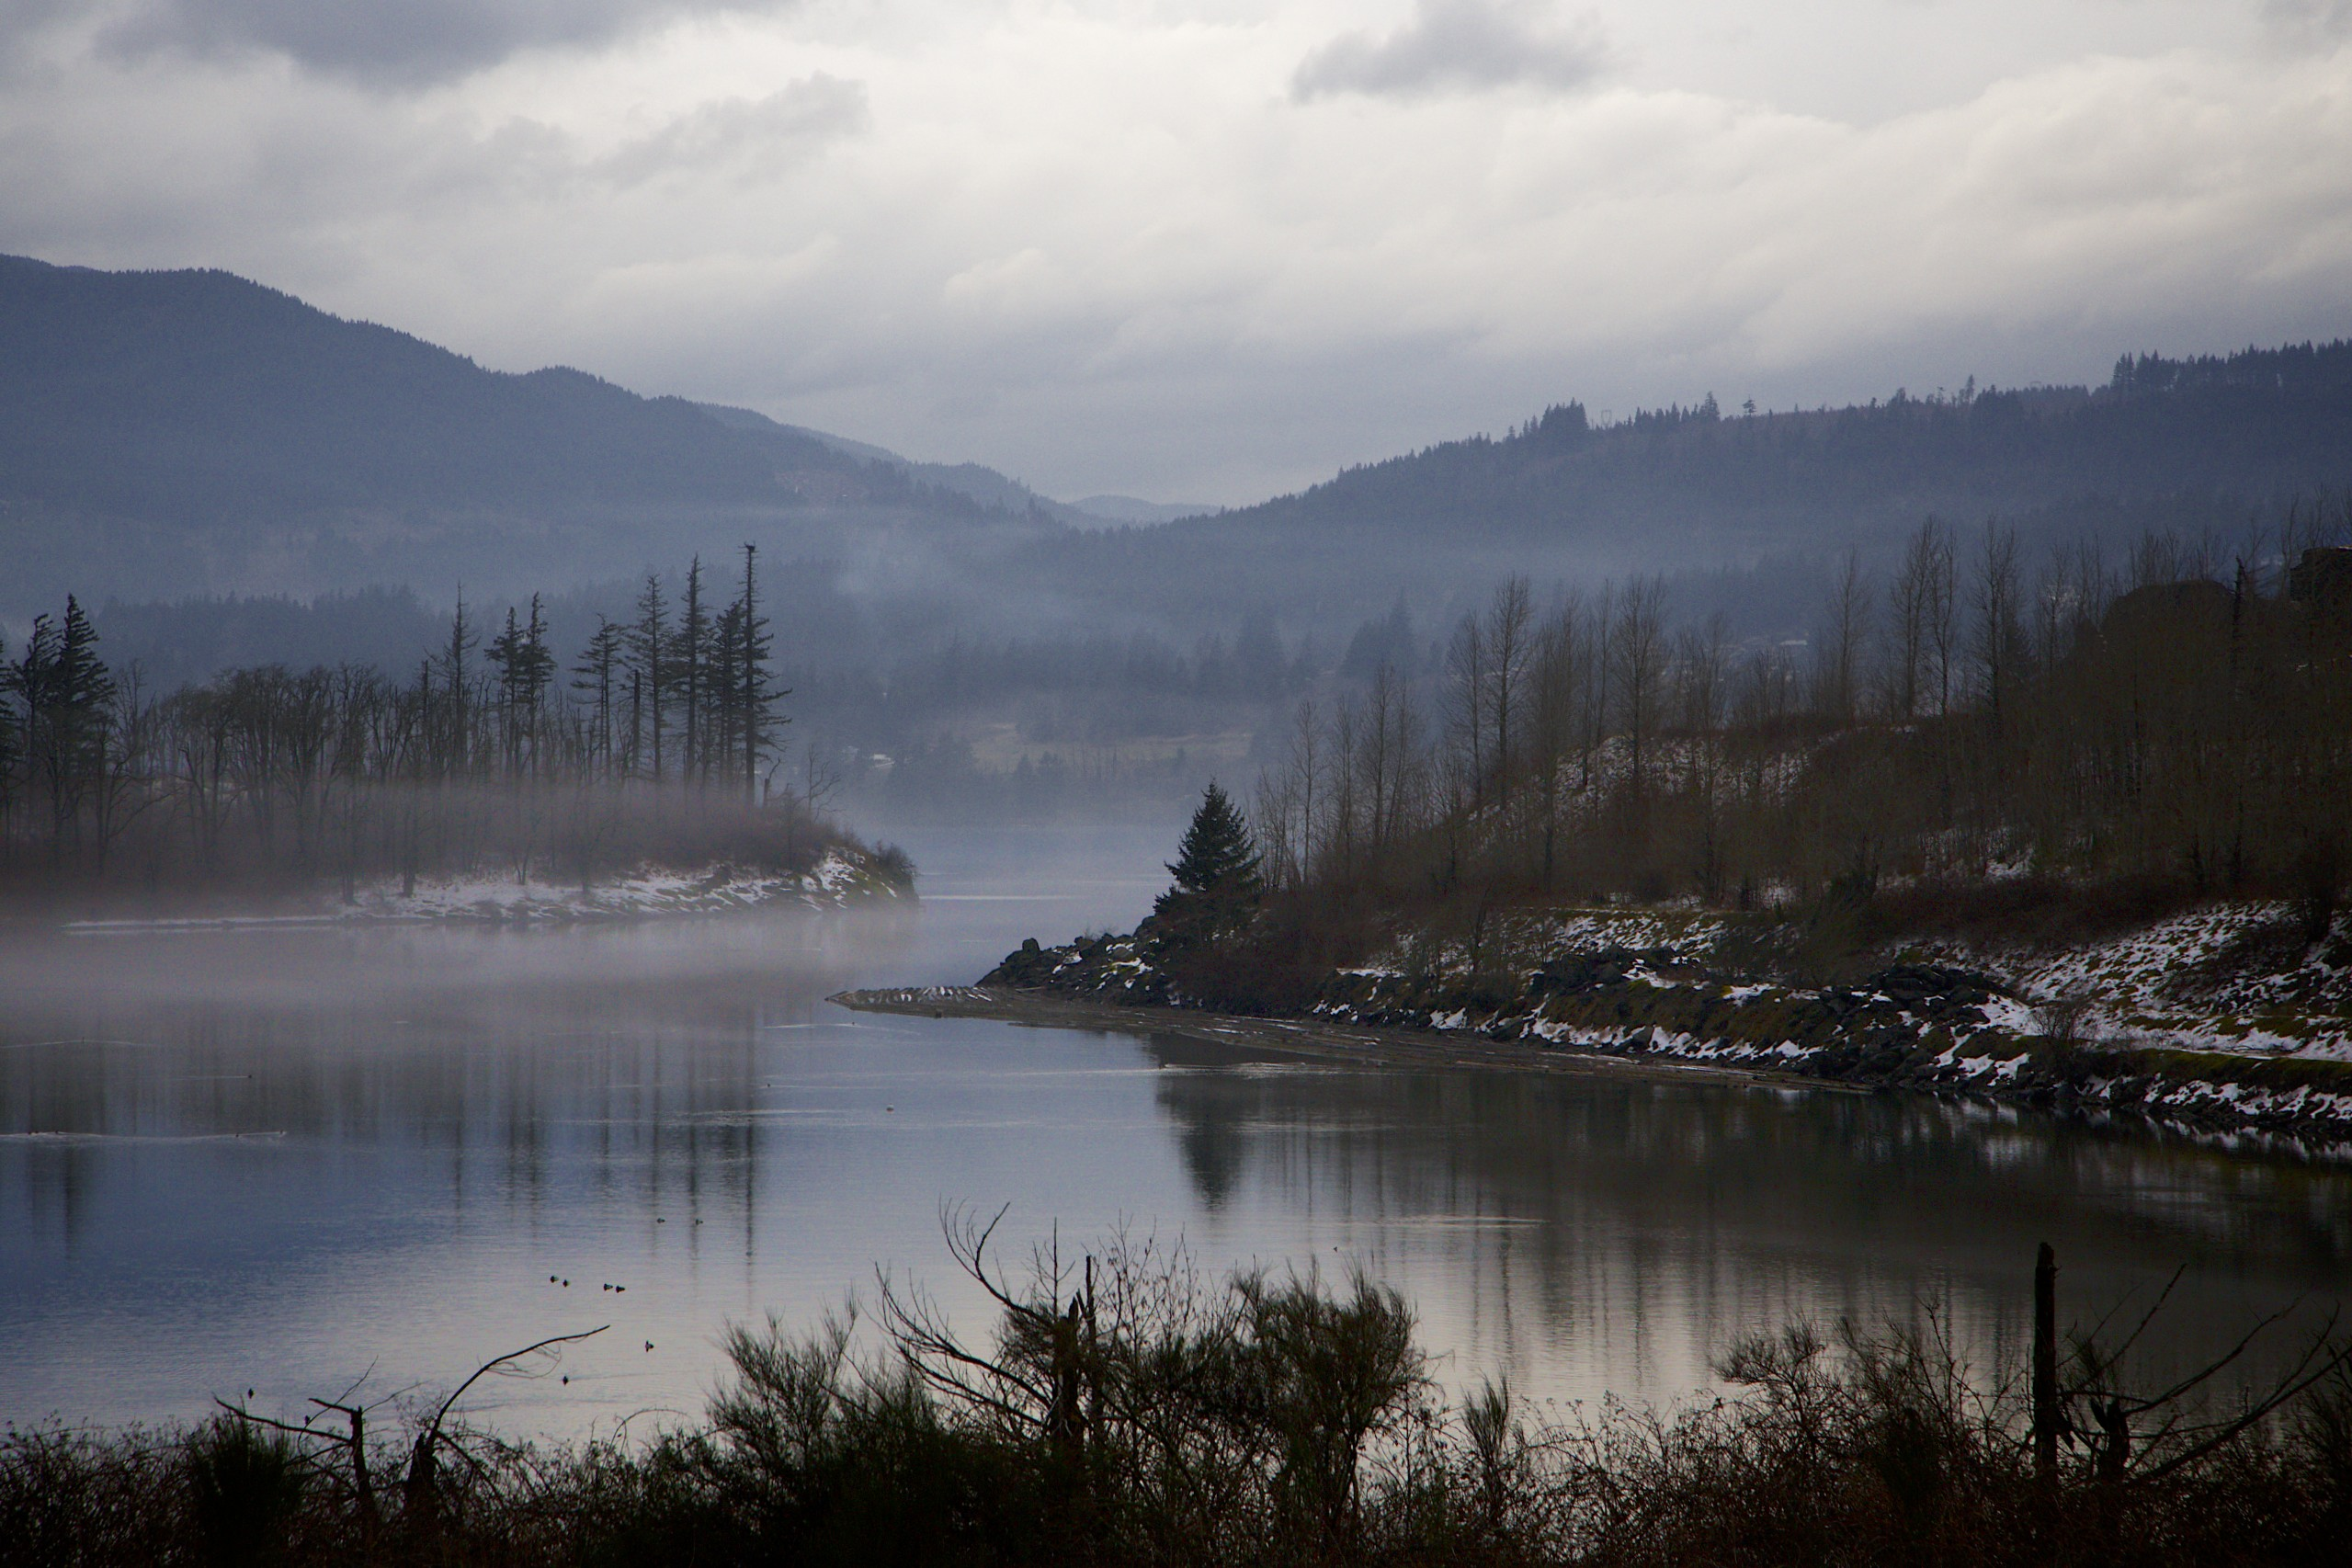 Oc i took this photo in portland oregon last week for The hood river